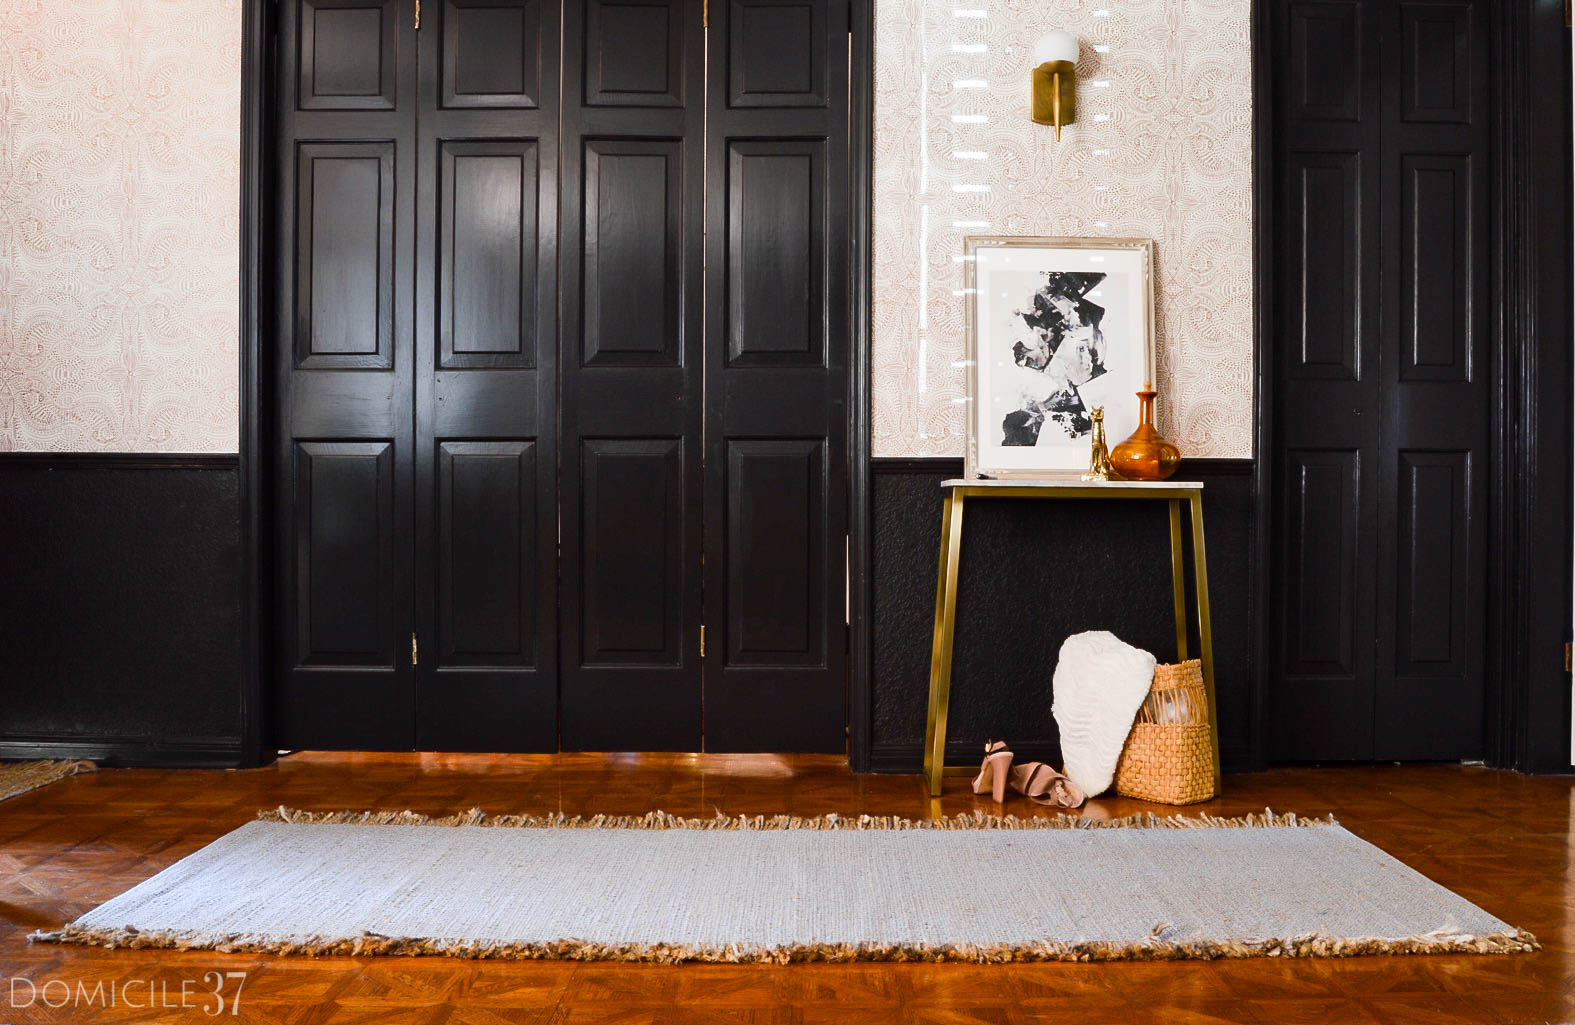 Vintage Eclectic Moody Foyer | Andanza Wallpaper by Hygge & West | Black Foyer | Moody Foyer | Foyer Styling | Eclectic Foyers | Mid Century Modern Sconce | Jute Runner in Foyer